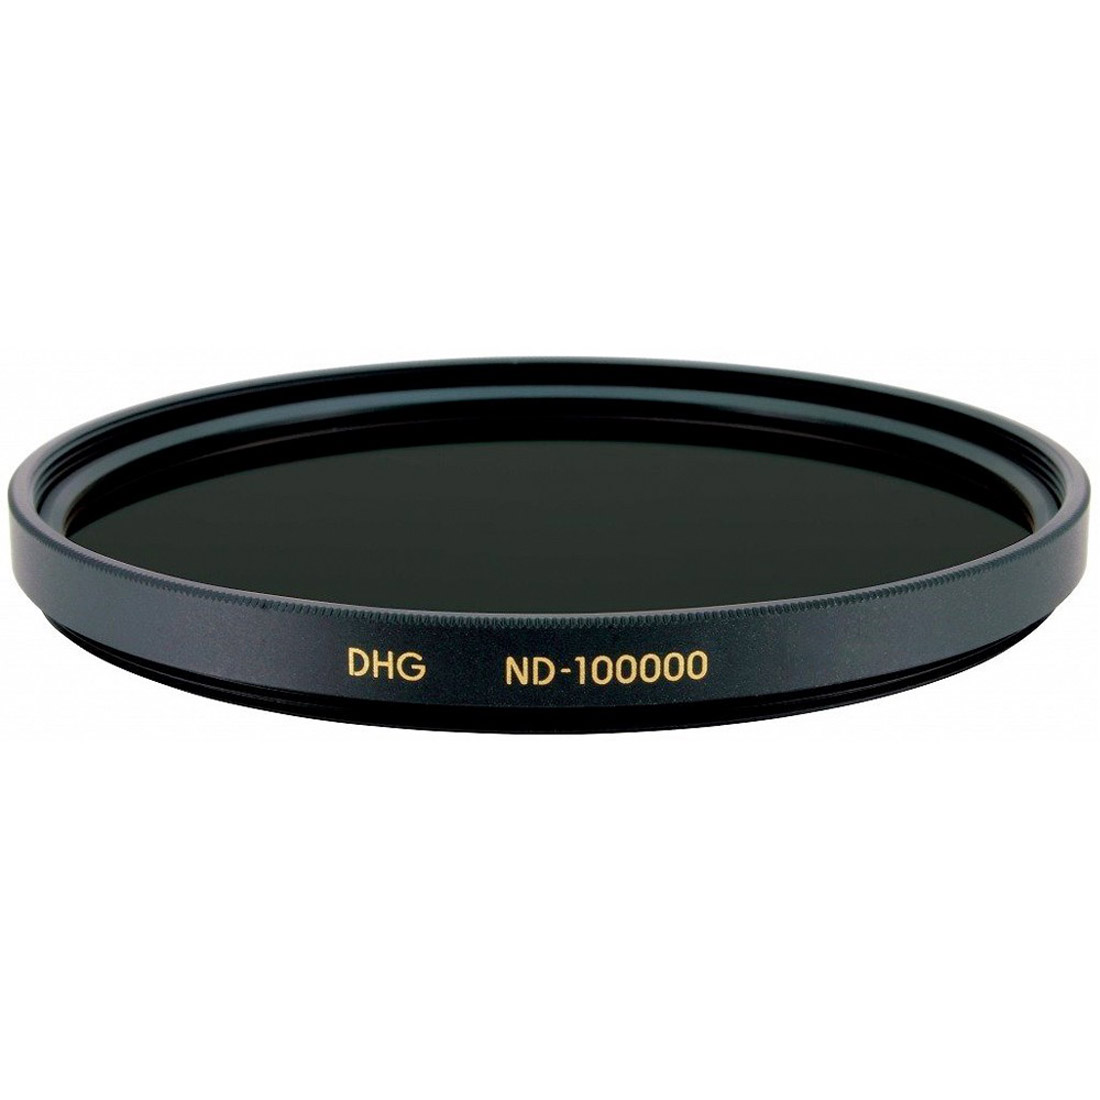 ND filter 100000 DHG Marumi - 77 mm